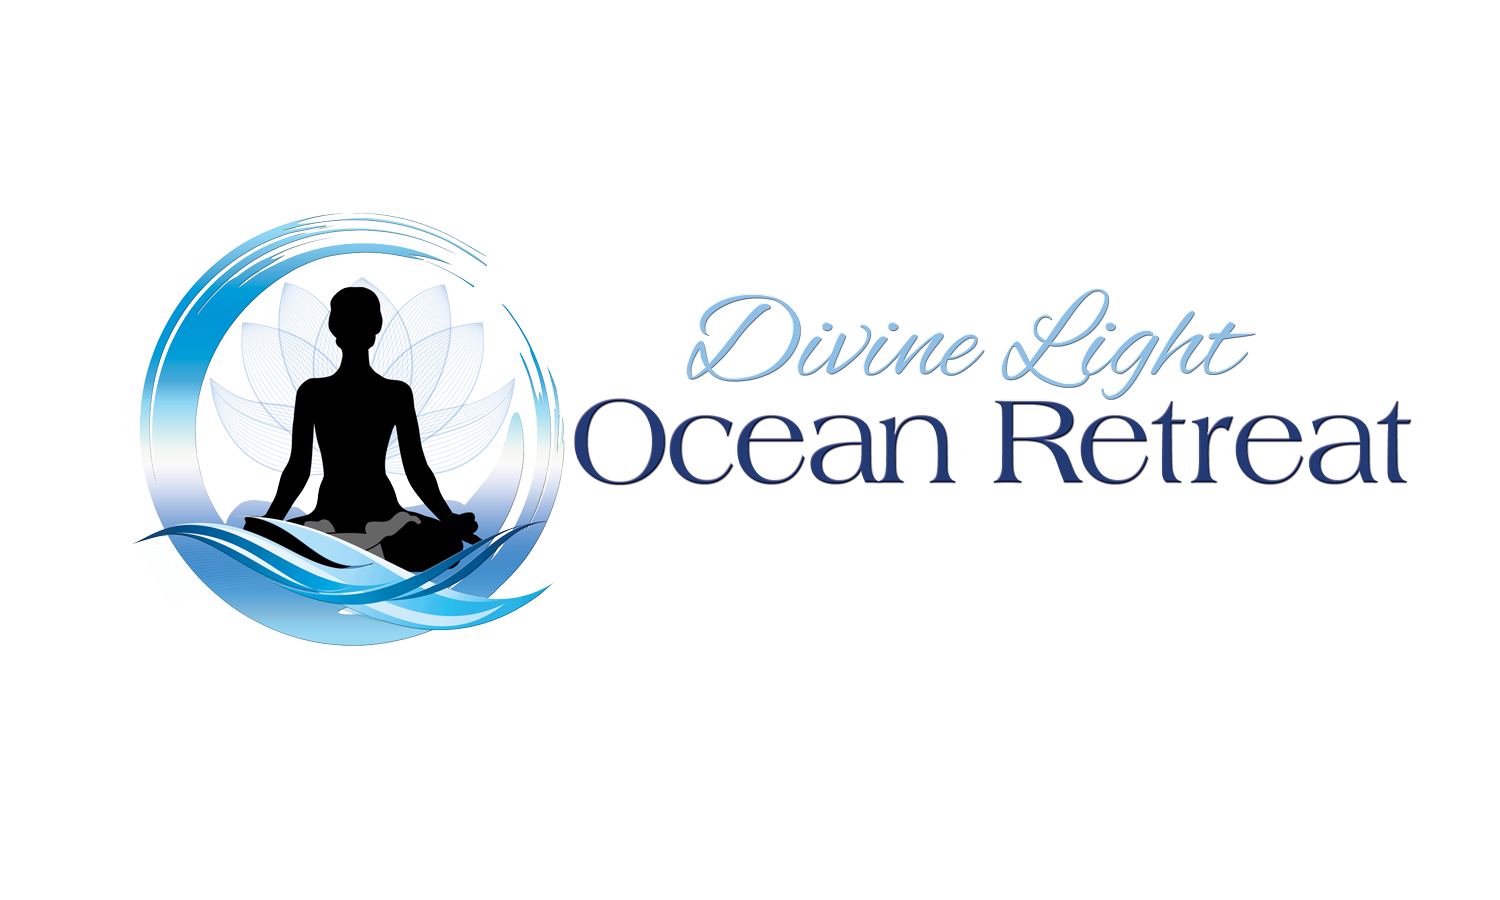 Divine Light Ocean Retreat